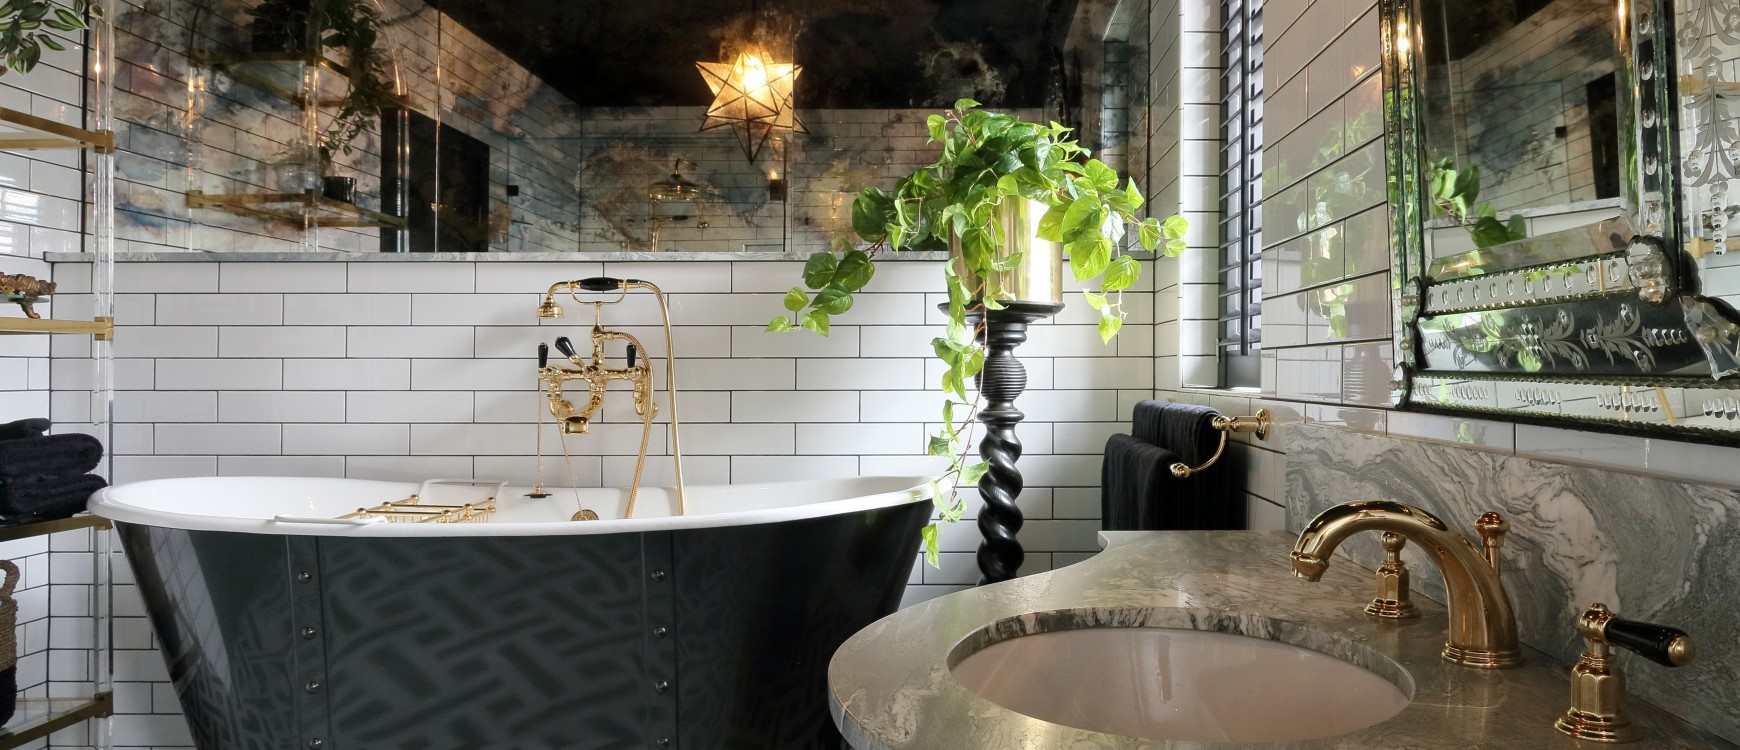 Hollywood Regency Inspired Bathroom Design At Its Best In